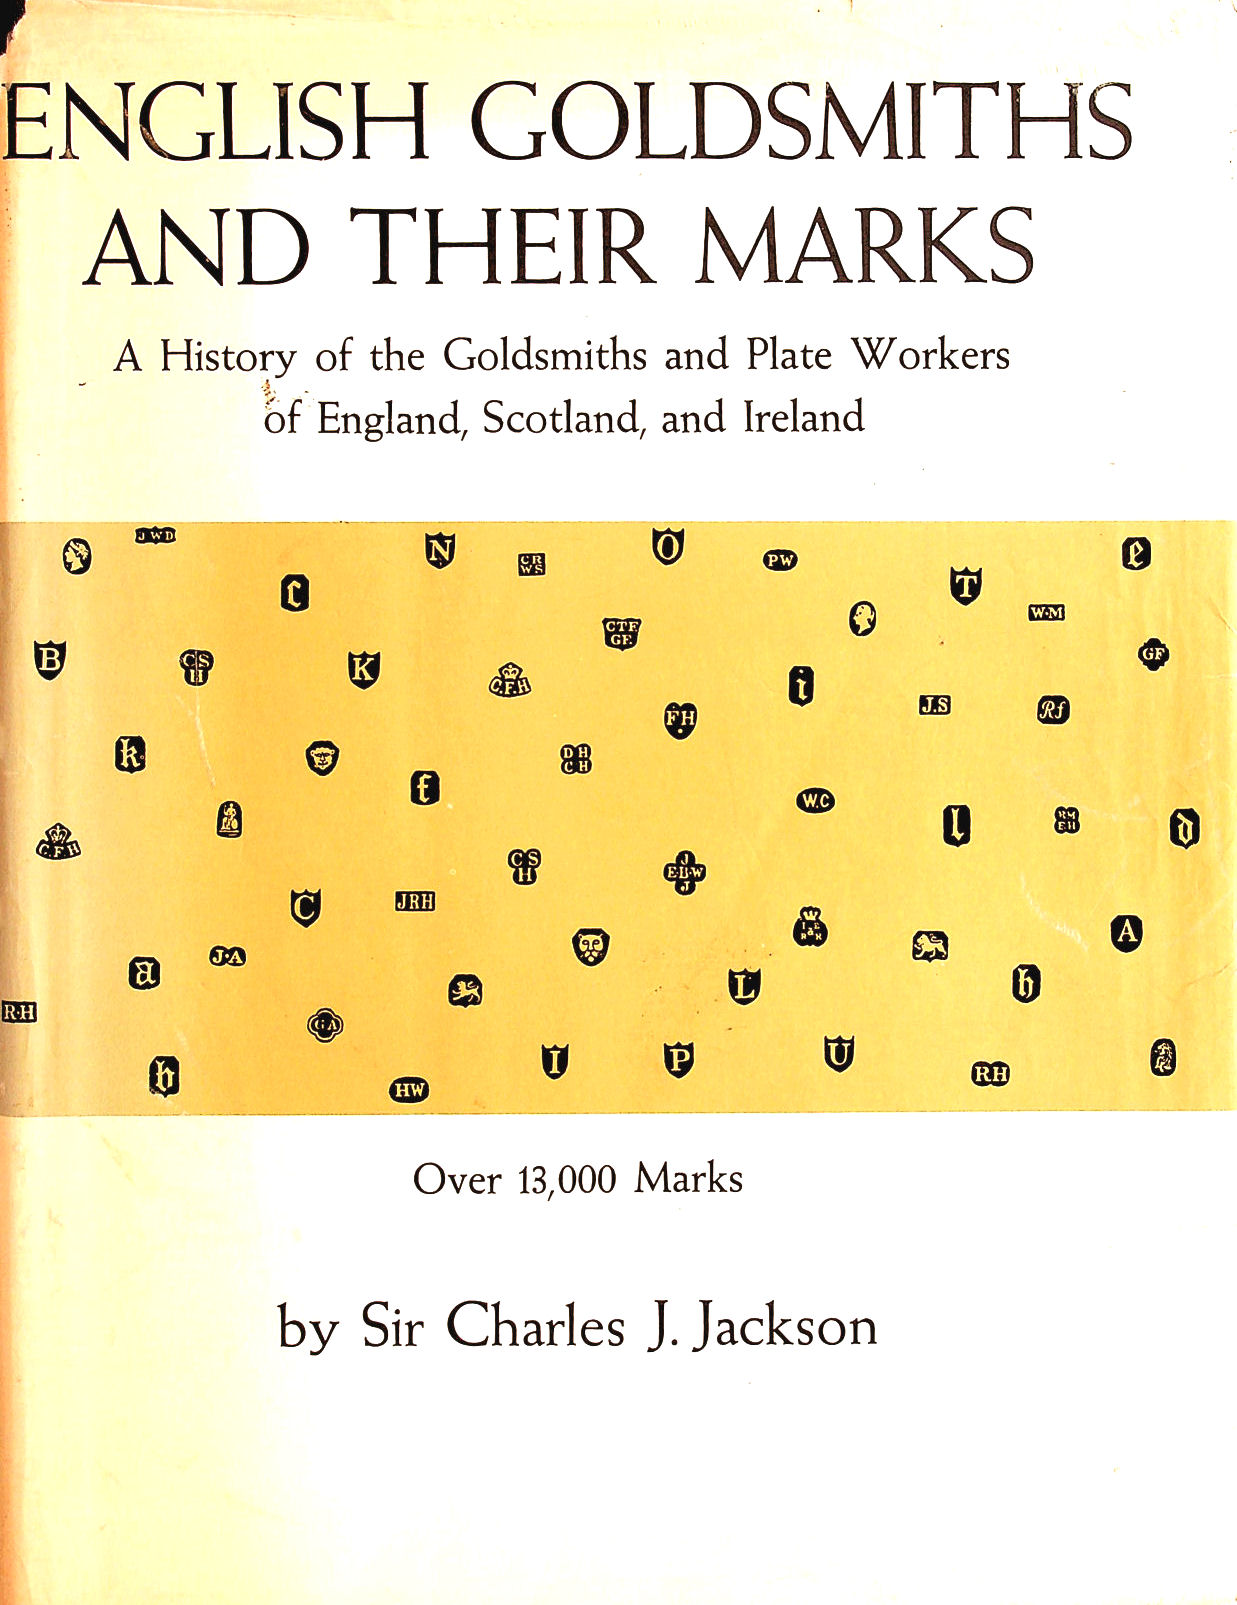 Image for English Goldsmiths and Their Marks. A History Of The Goldsmiths And Plate Workers Of England, Scotland, And Ireland. Reproduced In Facsimile From Authentic Examples Of Plate And Tables Of Date-Letters And Other Hall-Marks Used In The Assay Offices Of The United Kingdom